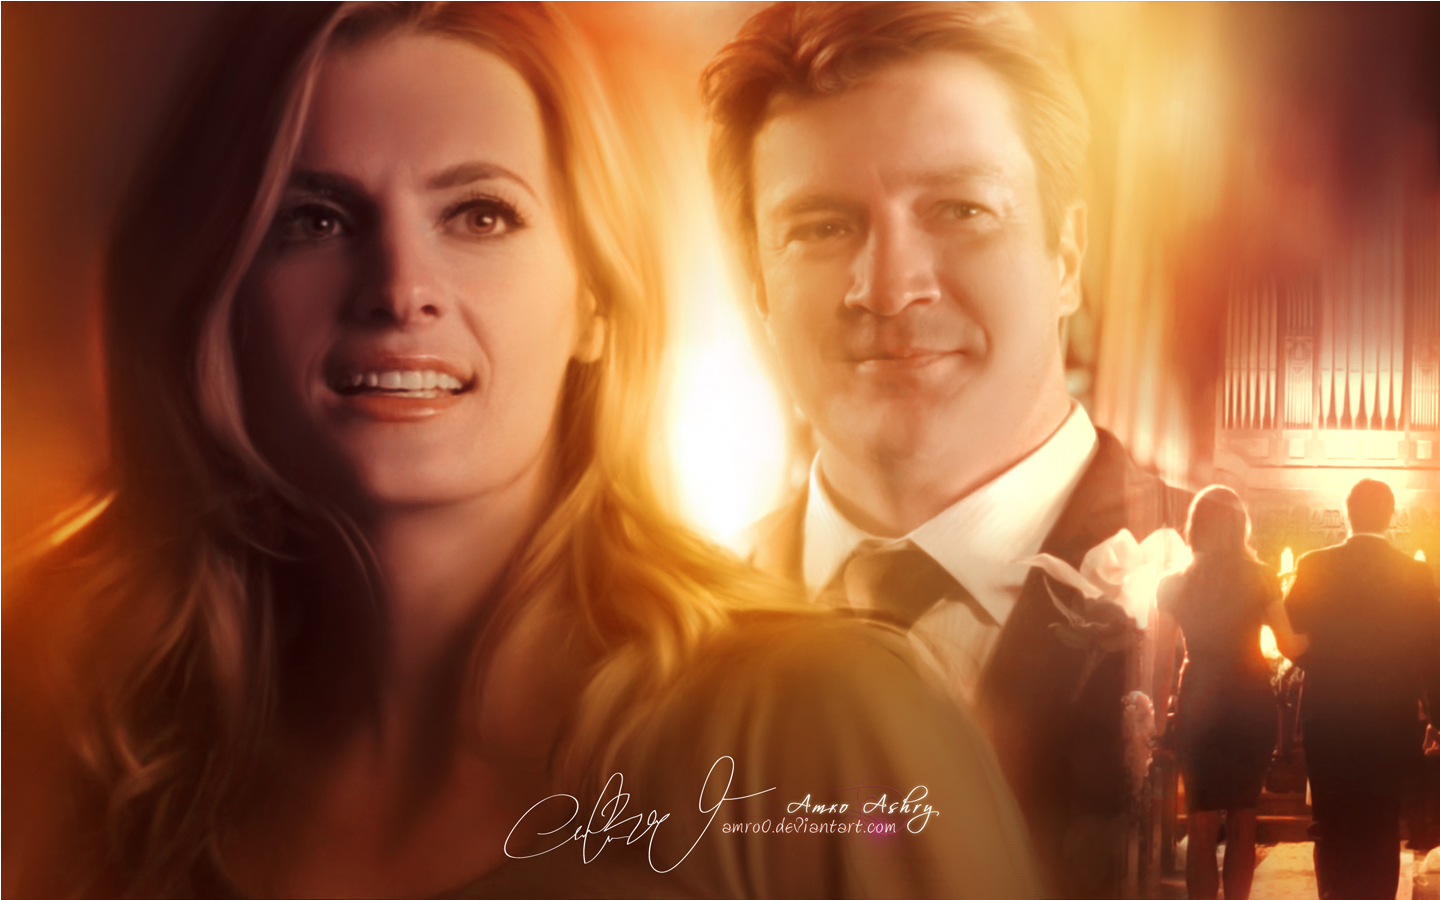 [影集] Castle (2009~2016) Castle-Tv-Show-wallpapers-castle-tv-show-wallpapers-30446015-1440-900